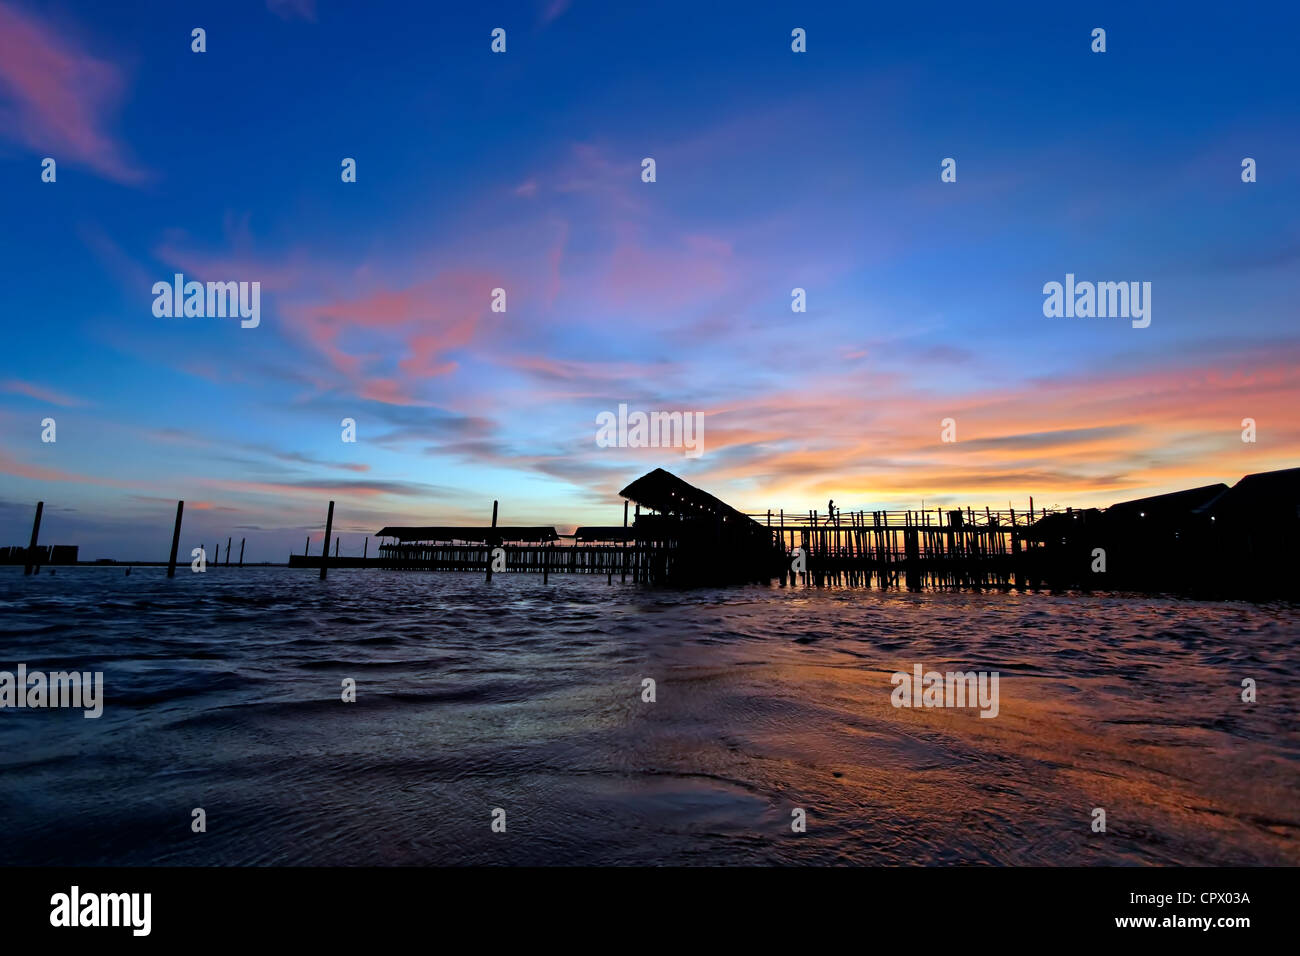 Remains of the Day on the Gulf of Thailand - Stock Image